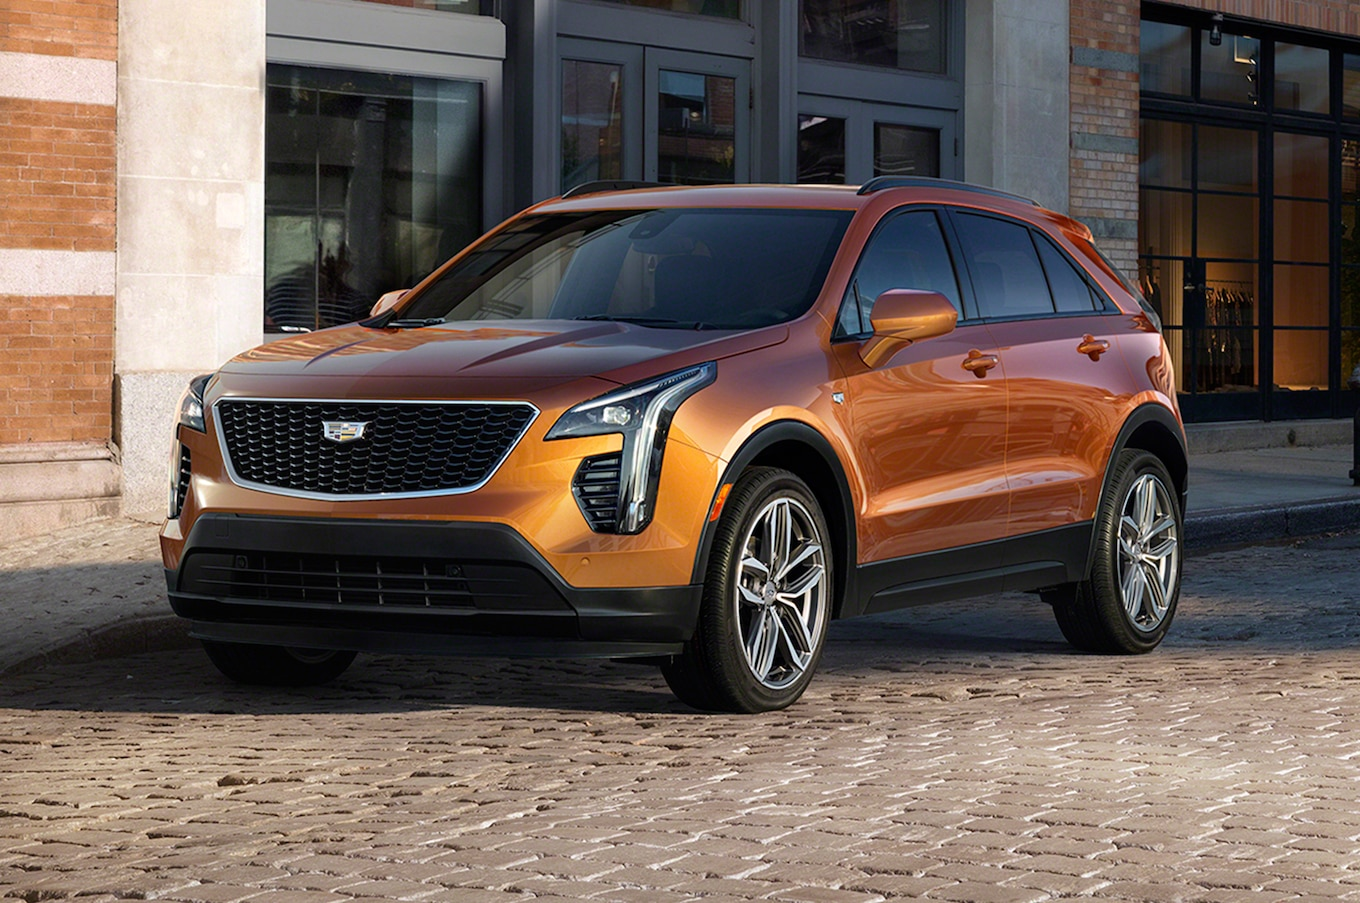 2019 Cadillac Xt4 First Look Opposite The Escalade